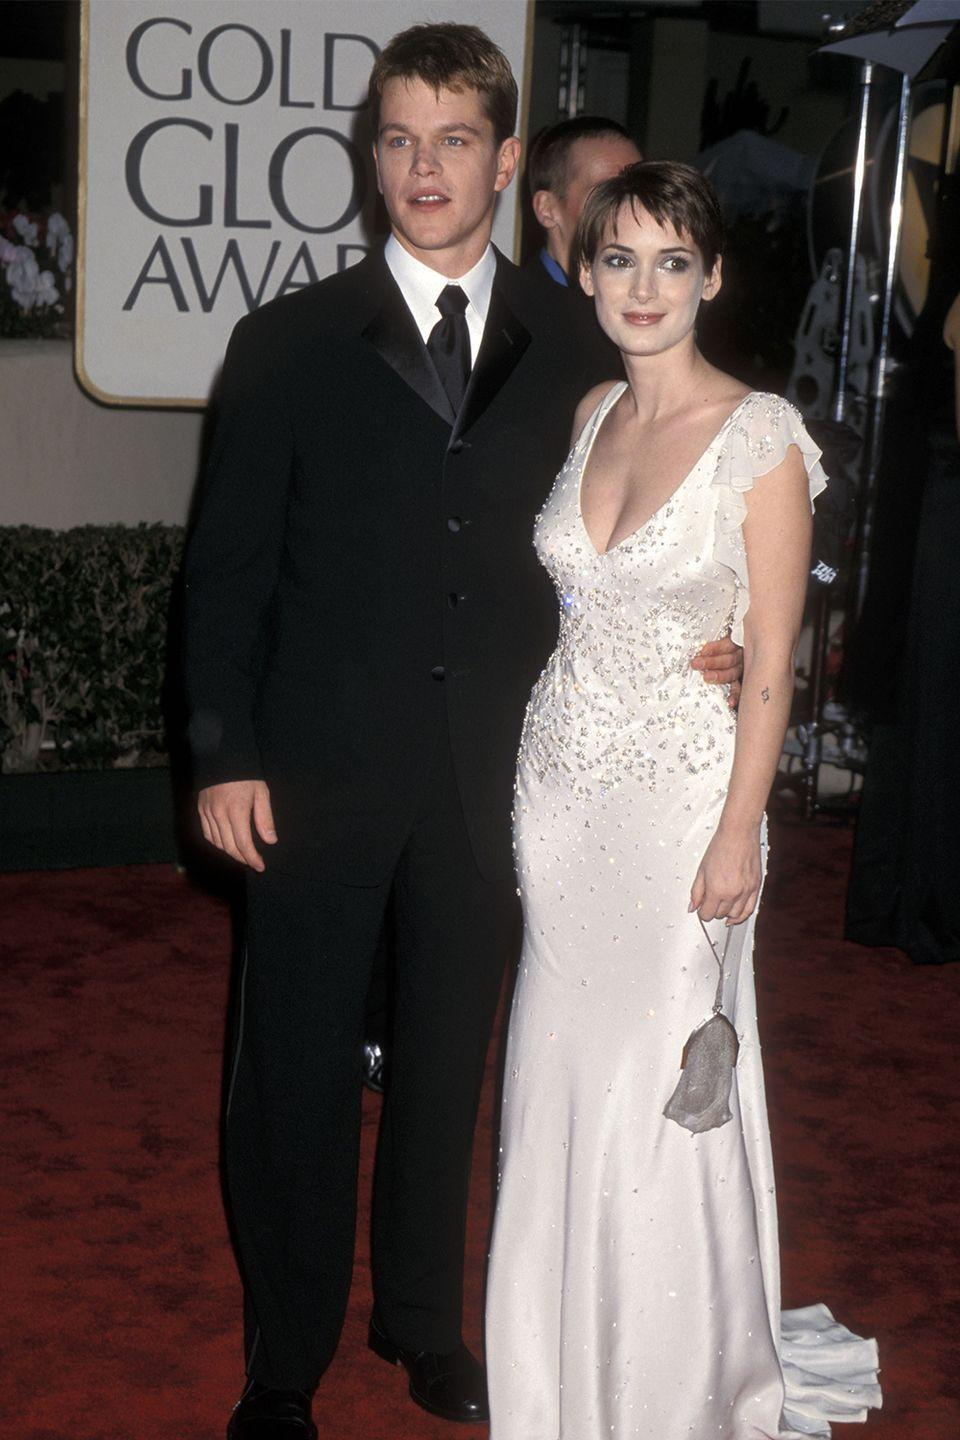 """<p>Back in 1997, Matt Damon and Winona Ryder were introduced by Gwyneth Paltrow who was at the time dating Damon's best friend, Ben Affleck (click to the next slide to see yet another of Paltrow's famous exes). After hitting it off, Damon and Ryder started dating, and Ryder was Damon's date to the 2000 Golden Globes when he was nominated for the movie <em>The Talented Mr. Ripley </em>(along with Paltrow). </p><p>Things didn't end up working out, but Ryder had nothing but good things to say about Damon. """"Matt couldn't be a greater, nicer guy,"""" she said <a href=""""https://www.popsugar.com/celebrity/photo-gallery/44108926/image/44109198/Matt-Damon"""" rel=""""nofollow noopener"""" target=""""_blank"""" data-ylk=""""slk:in an interview"""" class=""""link rapid-noclick-resp"""">in an interview</a>. """"I'm really lucky that I'm on good terms with him.""""</p>"""